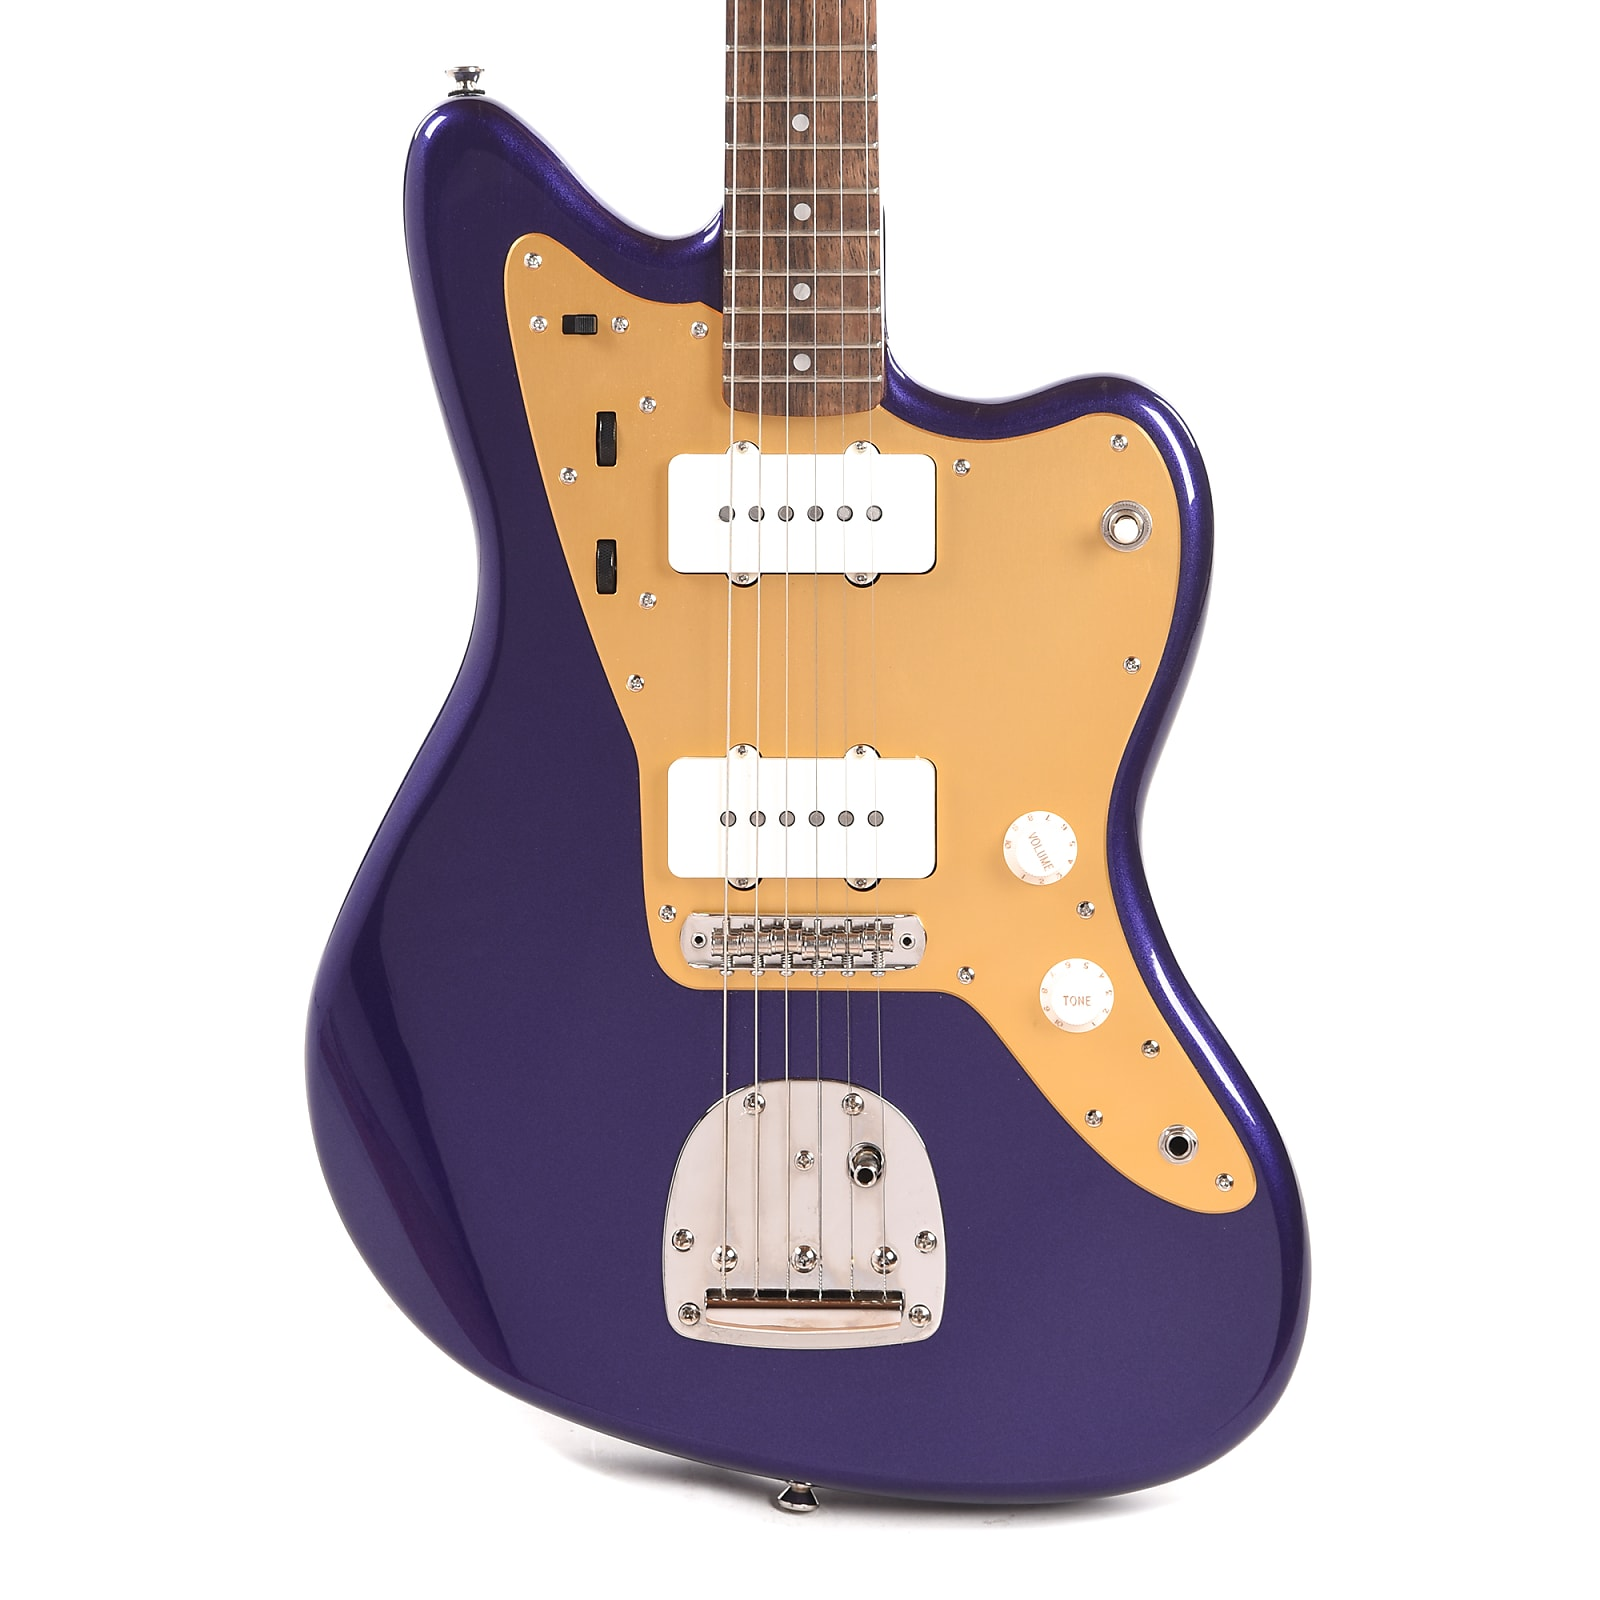 Squier Classic Vibe '60s Jazzmaster Purple Metallic w/Gold Pickguard (CME Exclusive) Pre-Order